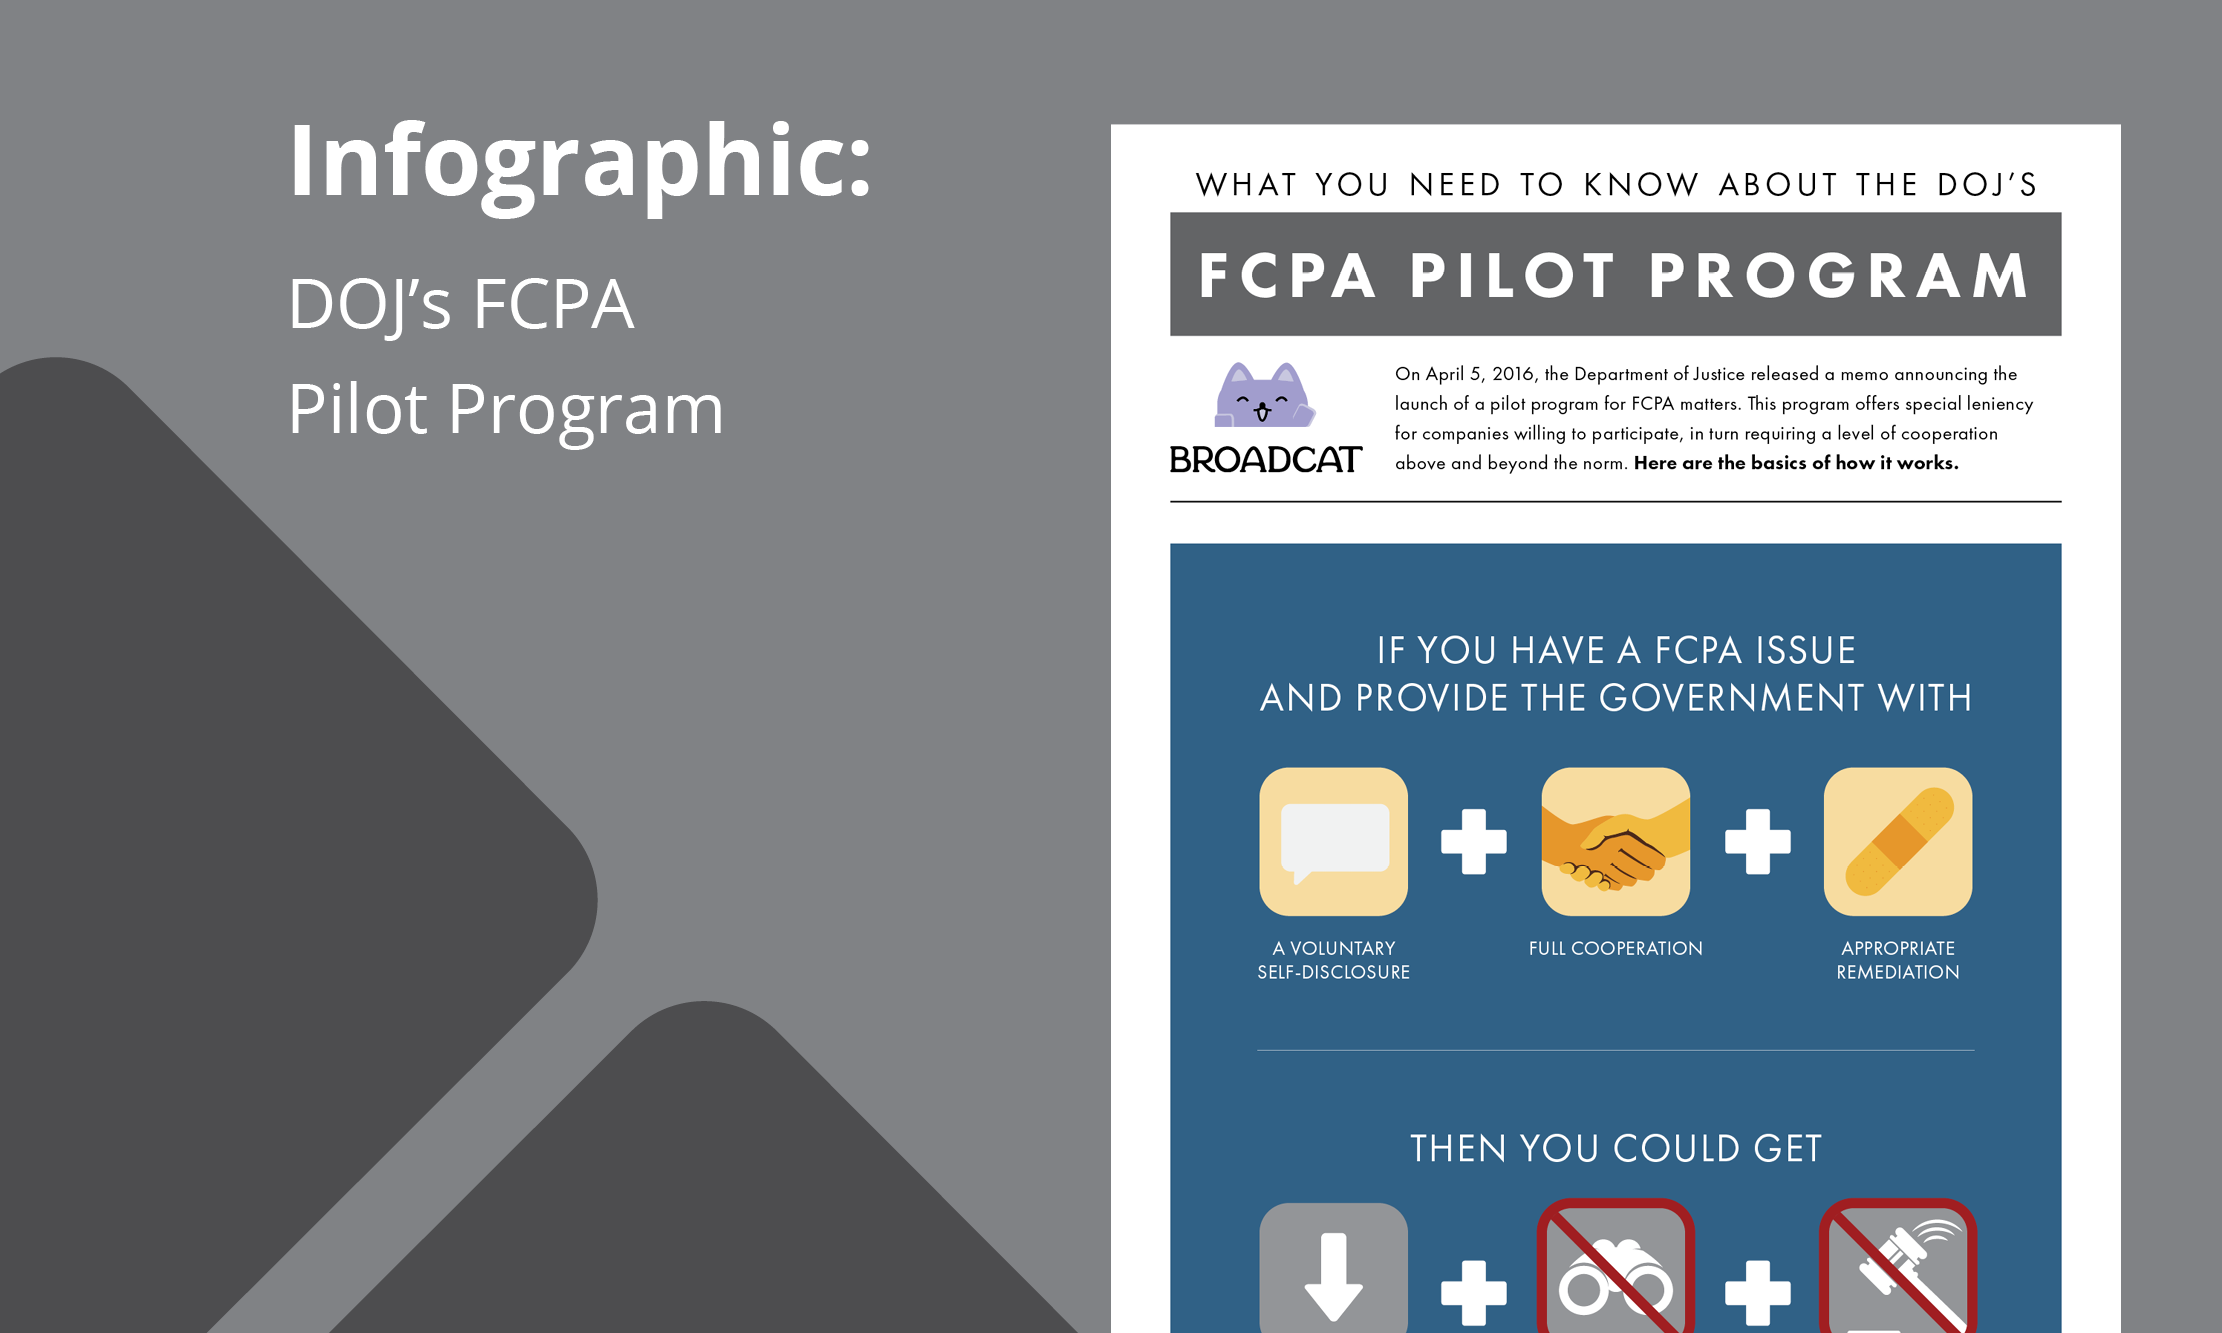 infographic-the-dojs-fcpa-pilot-program-visualized.png